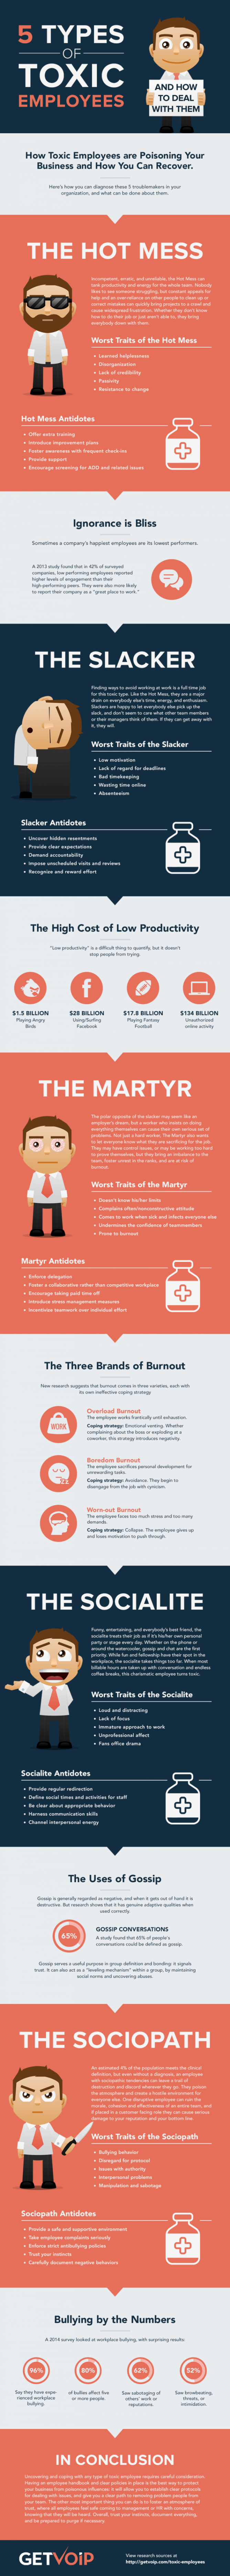 toxic-employees-infographic-700x7849